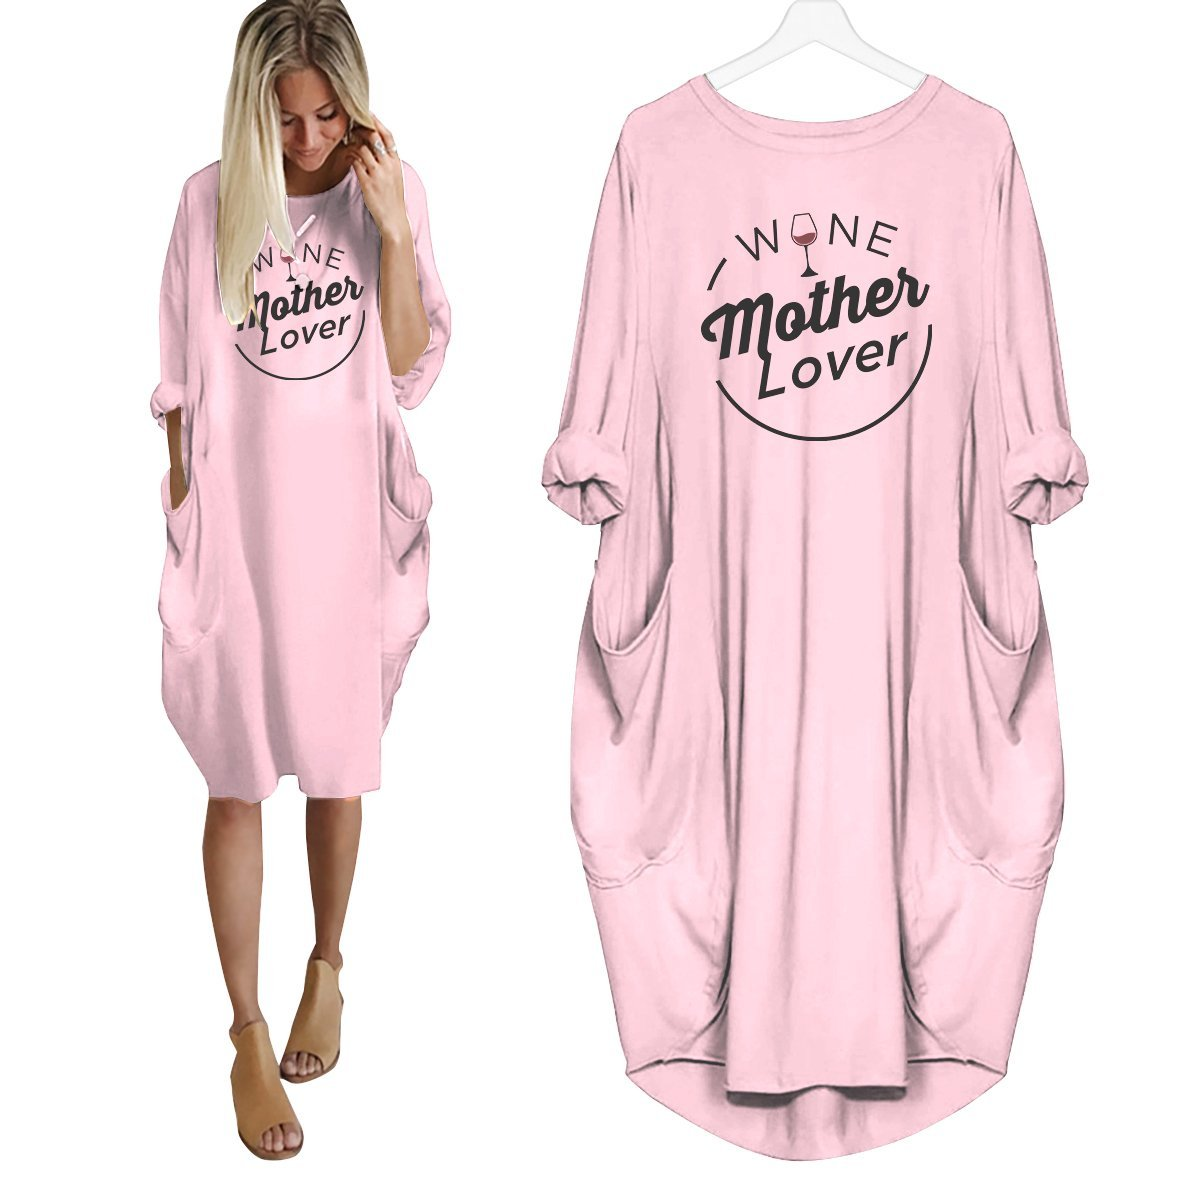 Wine Mother Lover Dress Pink / S